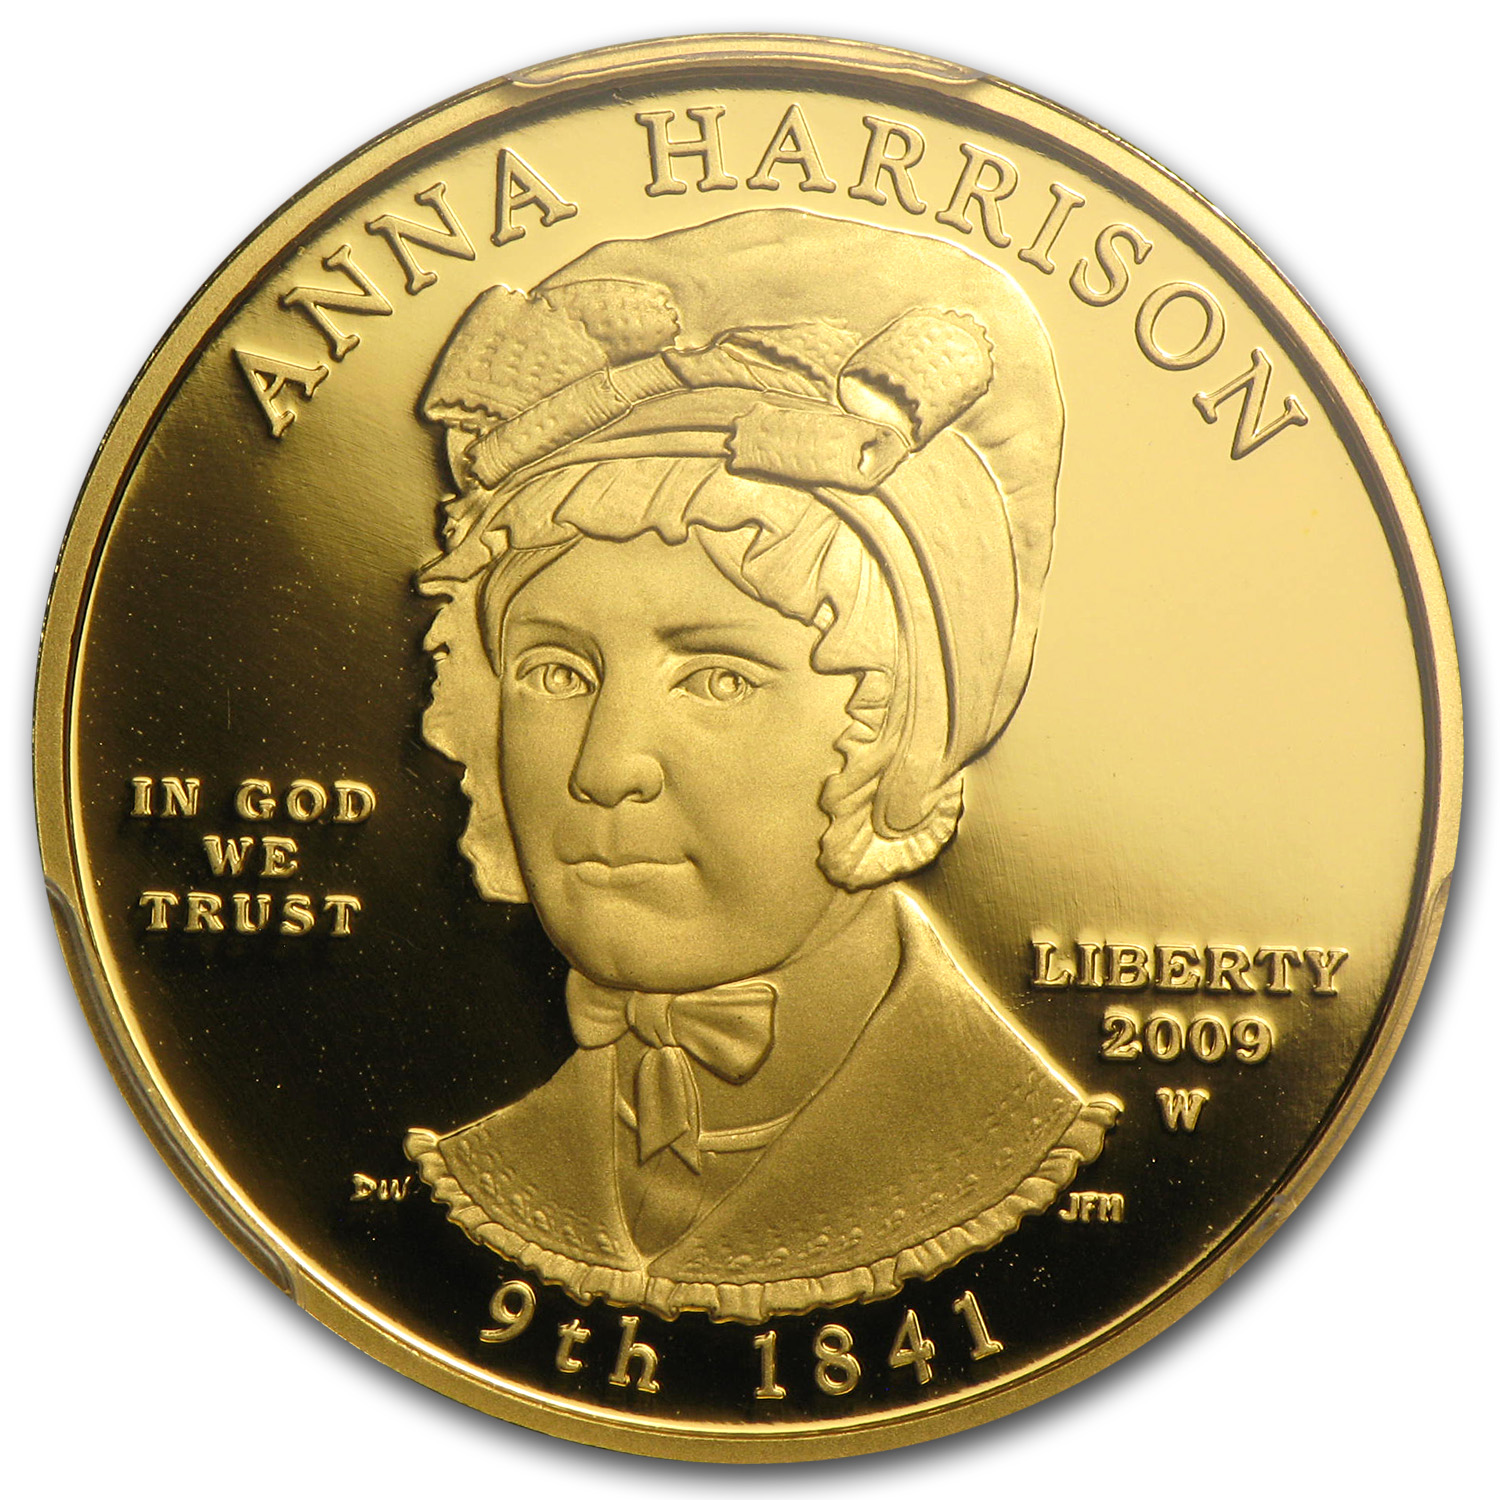 2009-W 1/2 oz Proof Gold Anna Harrison PR-69 PCGS